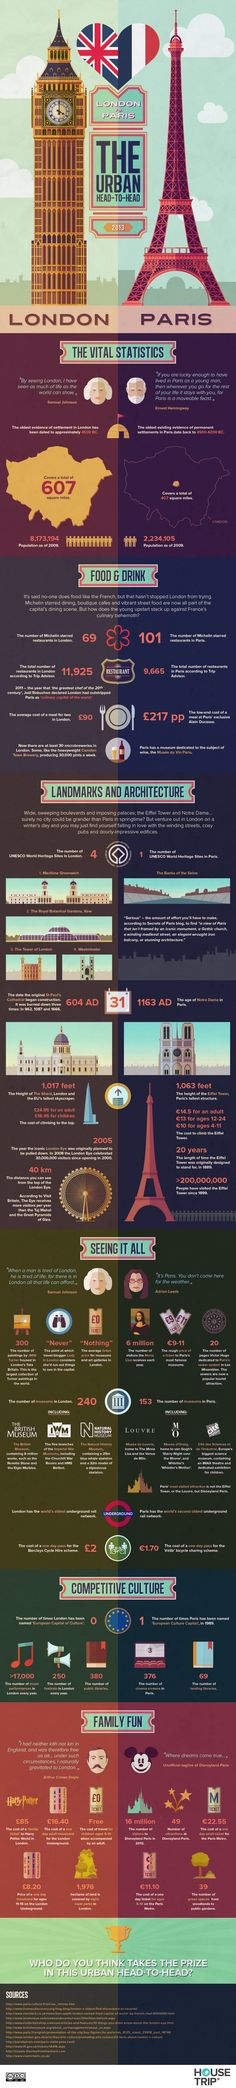 Paris or London? London or Paris? These two icons of culture, design, style and history go head to head in this Infographic designed by the team at Ho